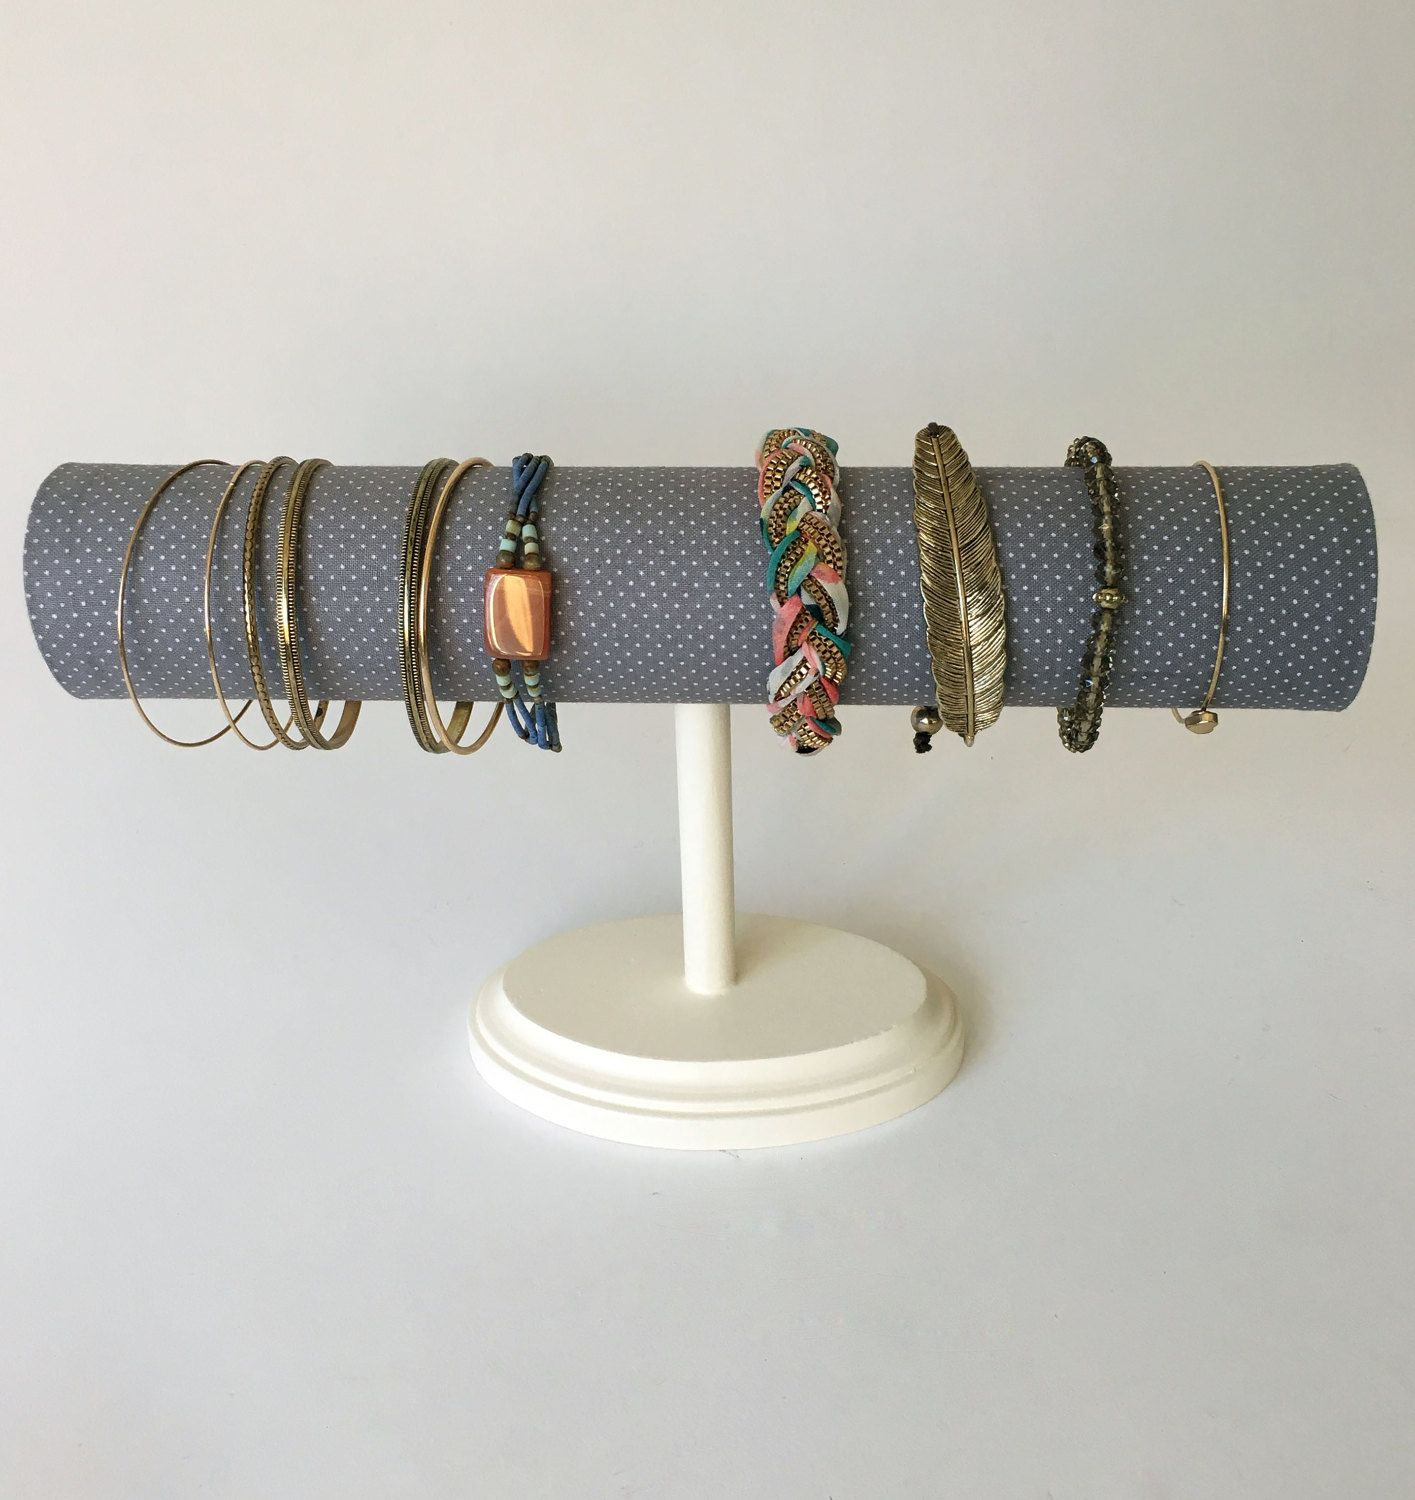 Bracelet Organizer Stand, Gray Dot, Jewelry Display, Watch Display, Watch